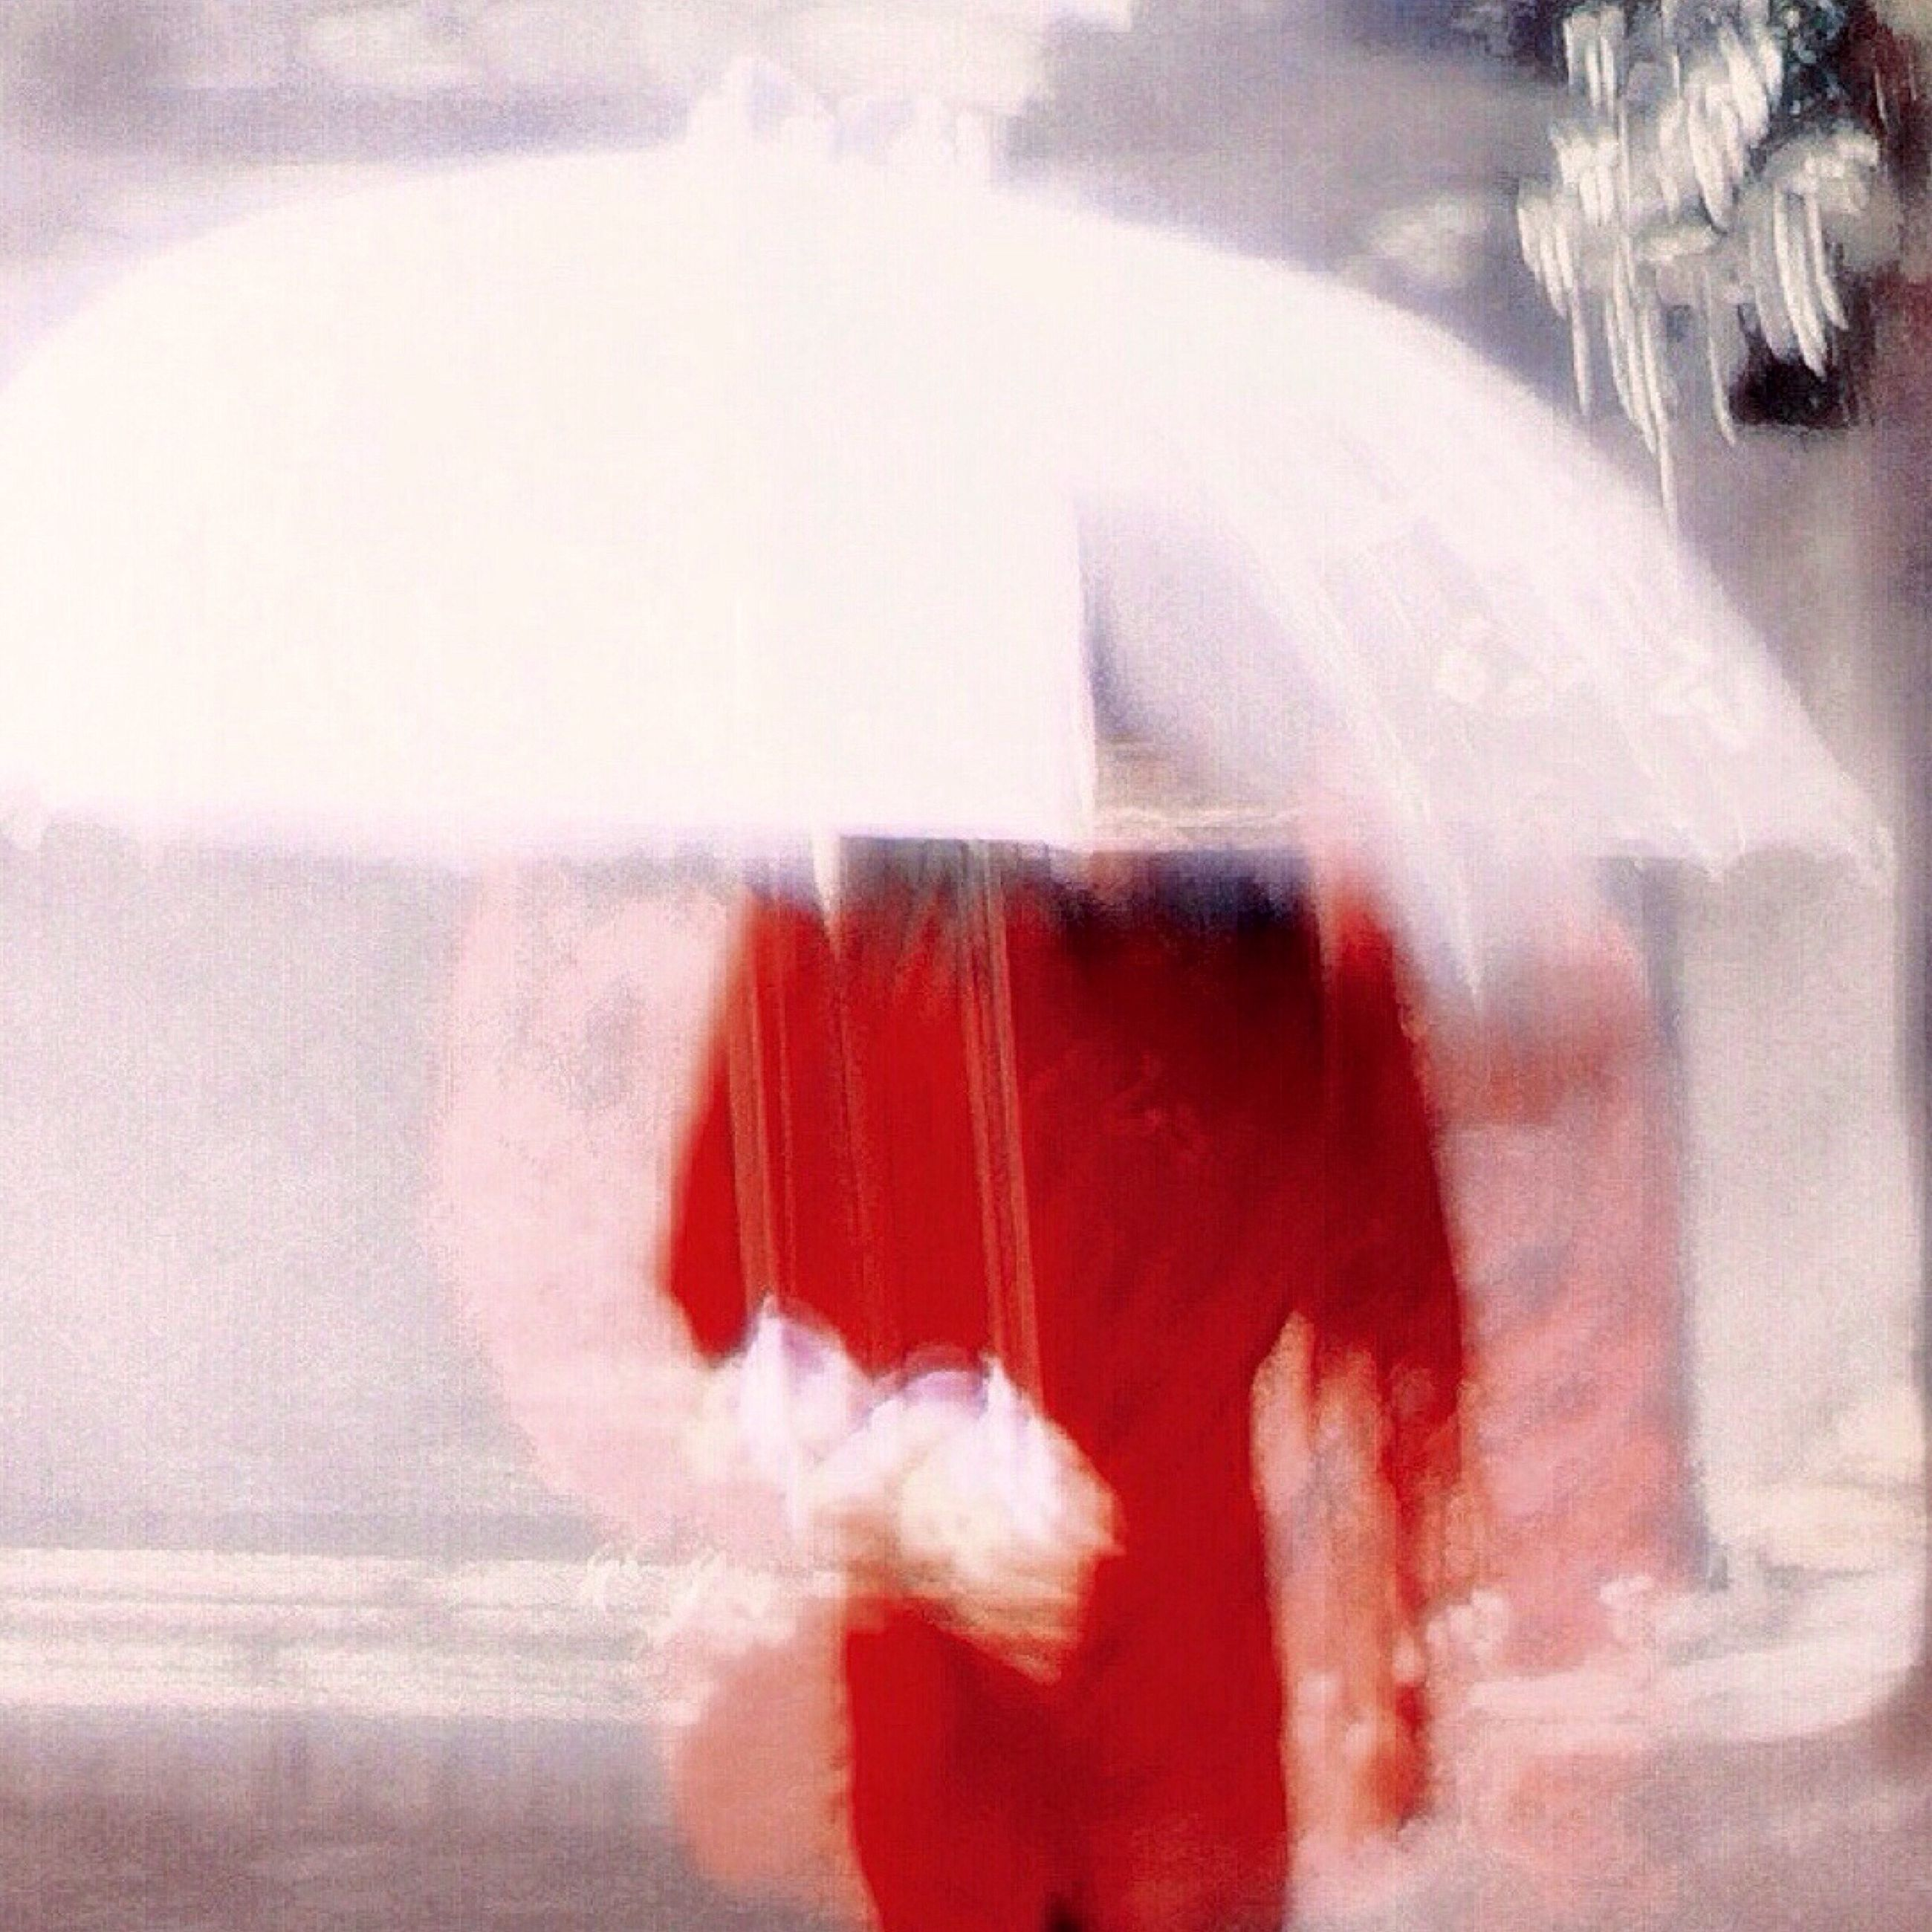 indoors, glass - material, blurred motion, reflection, transparent, lifestyles, motion, red, close-up, window, leisure activity, men, holding, person, rear view, side view, transportation, focus on foreground